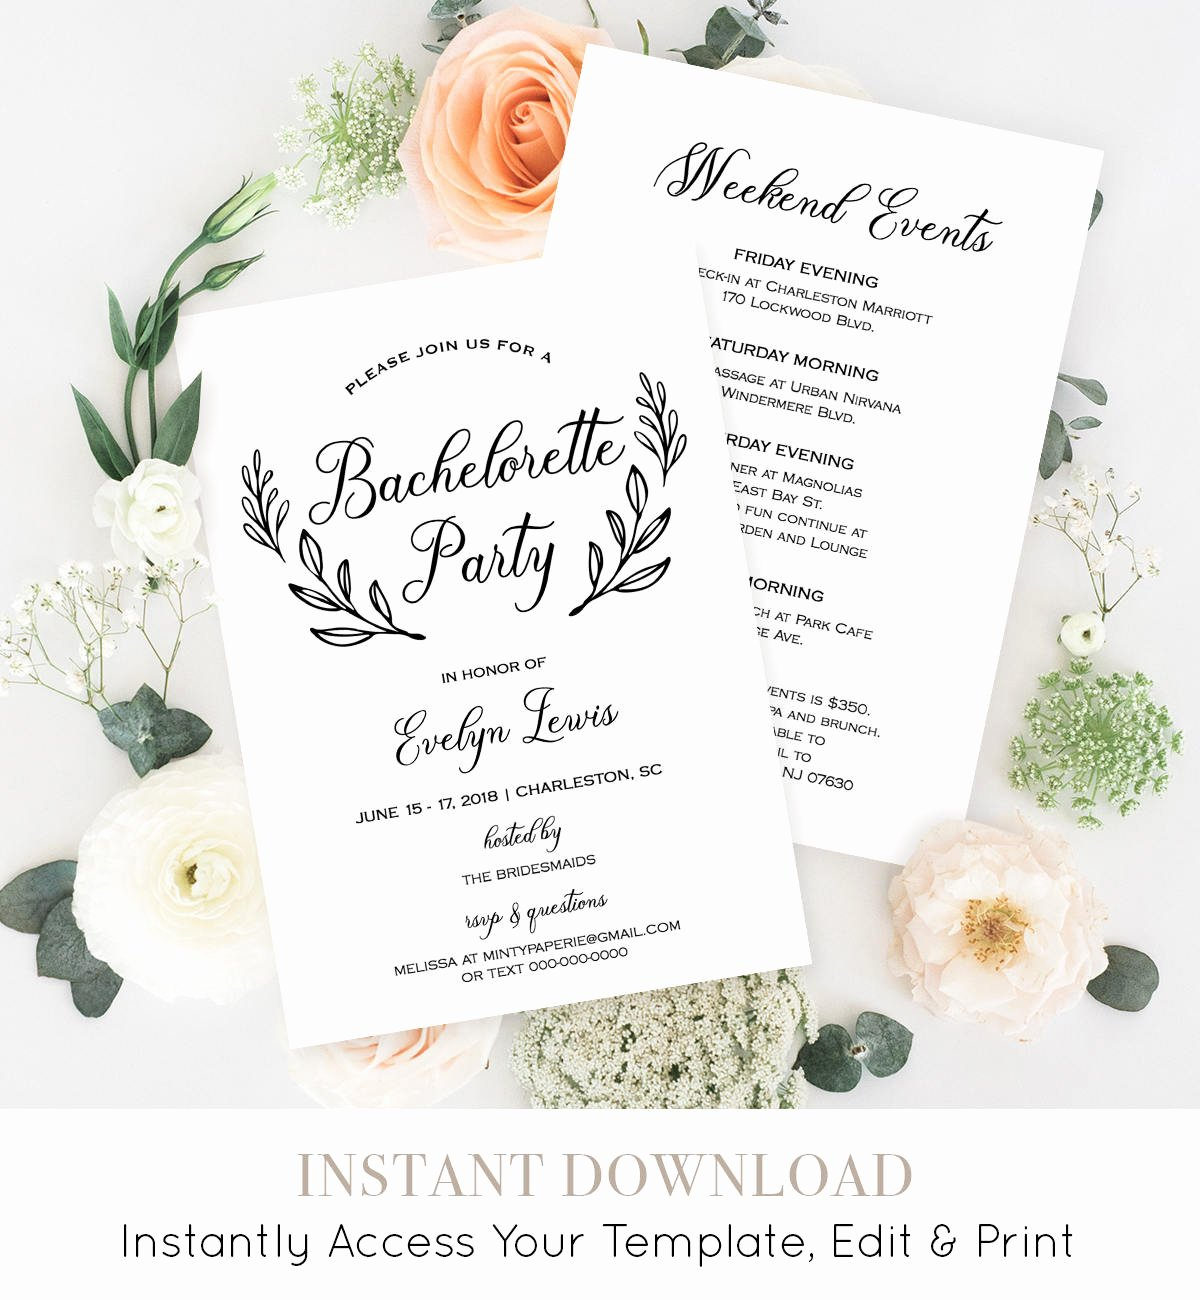 Bachelorette Party Invitation Template Printable